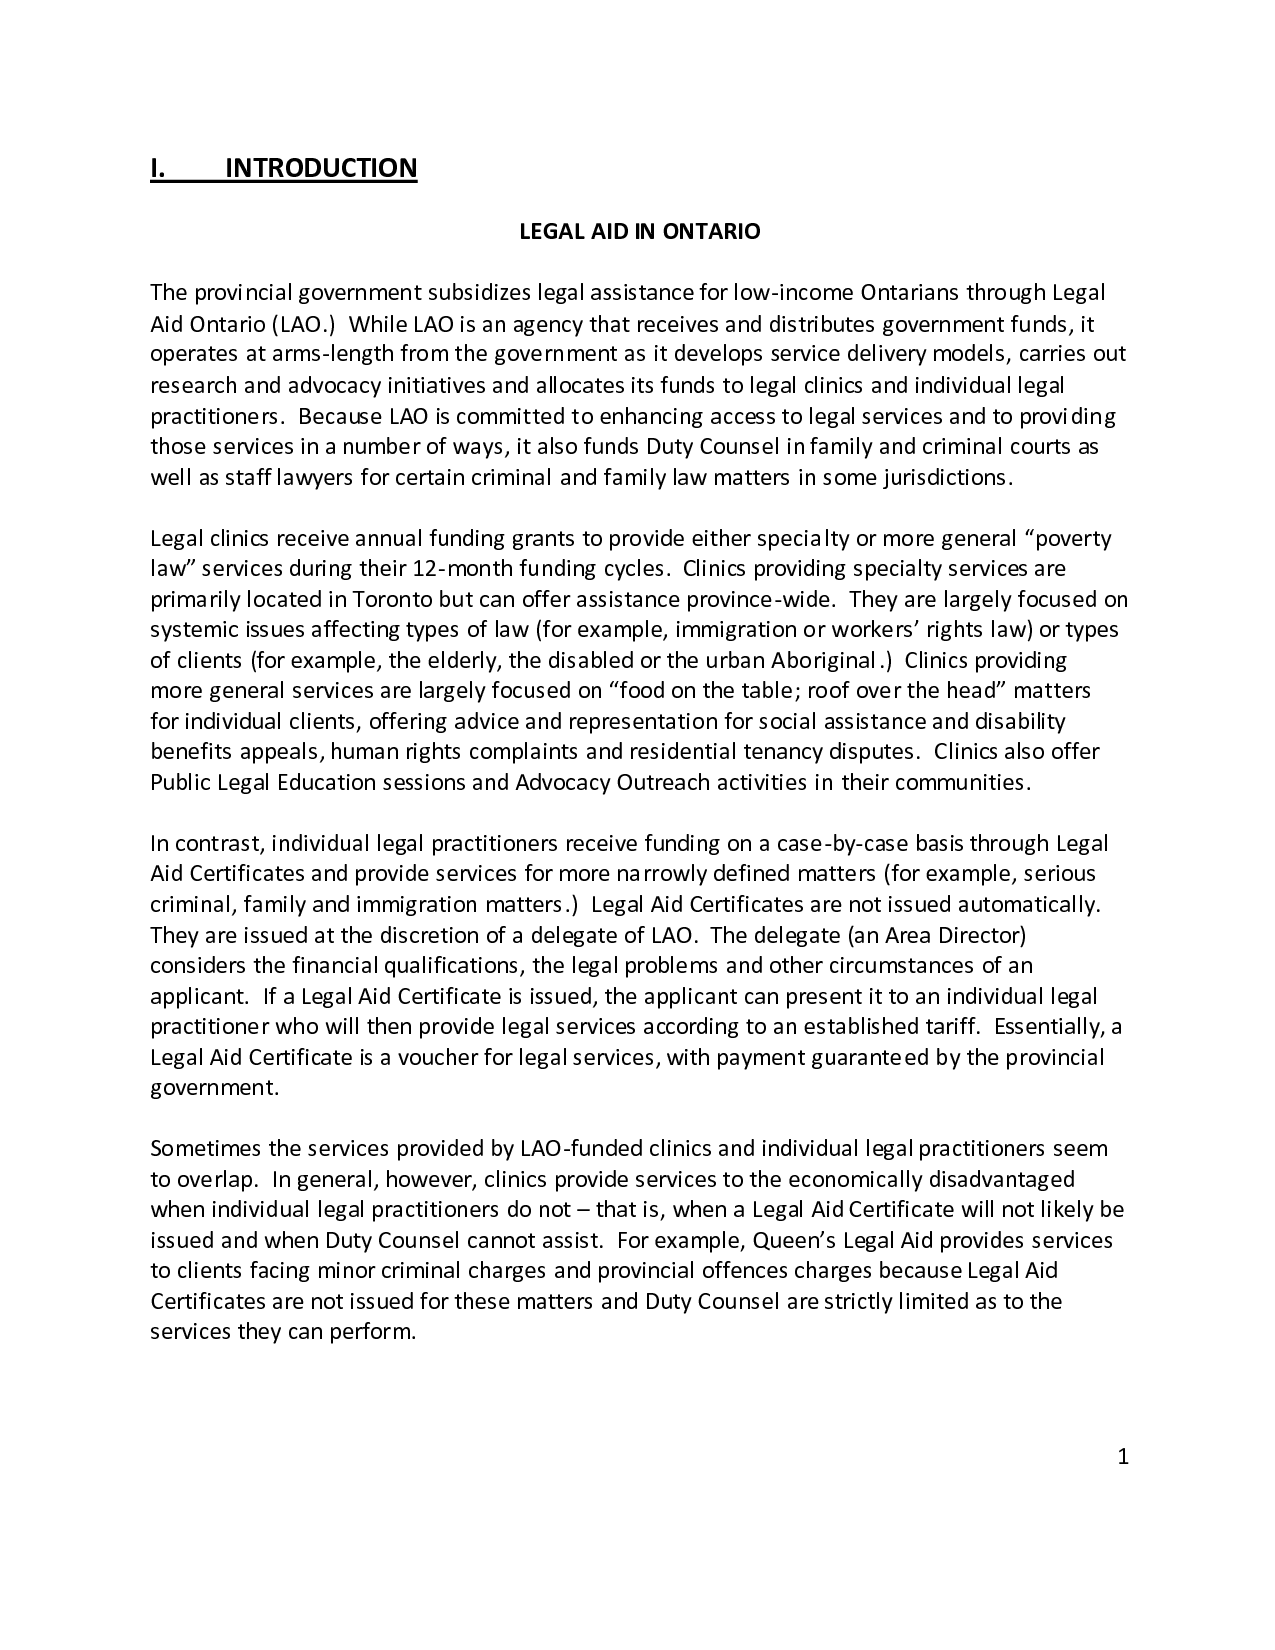 Apology essay to teacher essay on apology sample letters doc 565762 apology letter sample templatesusletter of apology apology letter sample templatesusletter of apology business letter sample altavistaventures